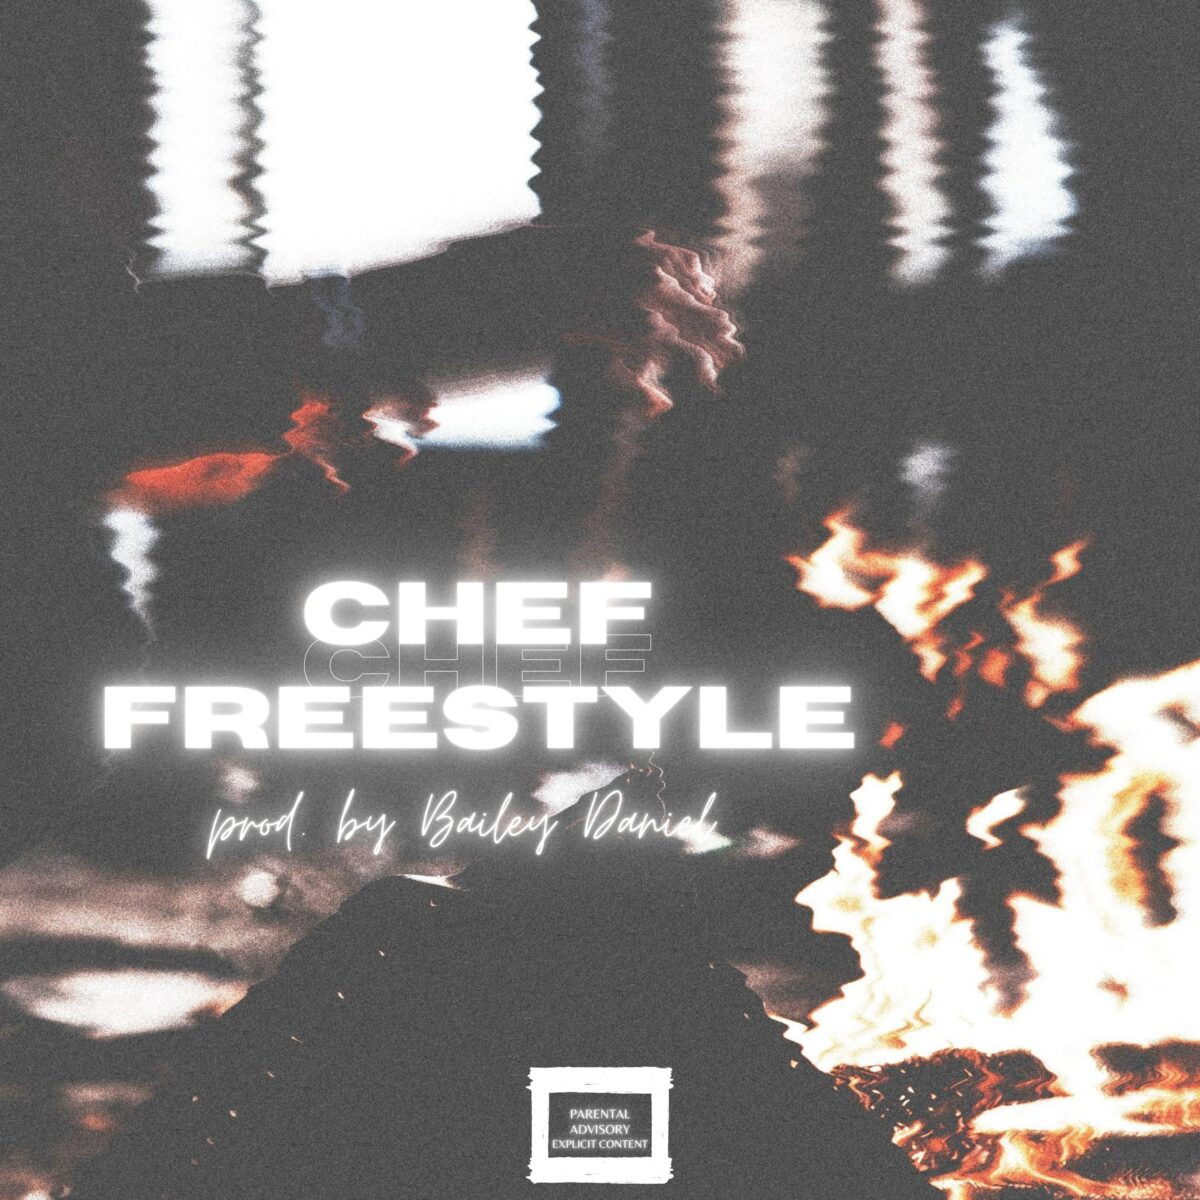 Chef Chef Freestyle